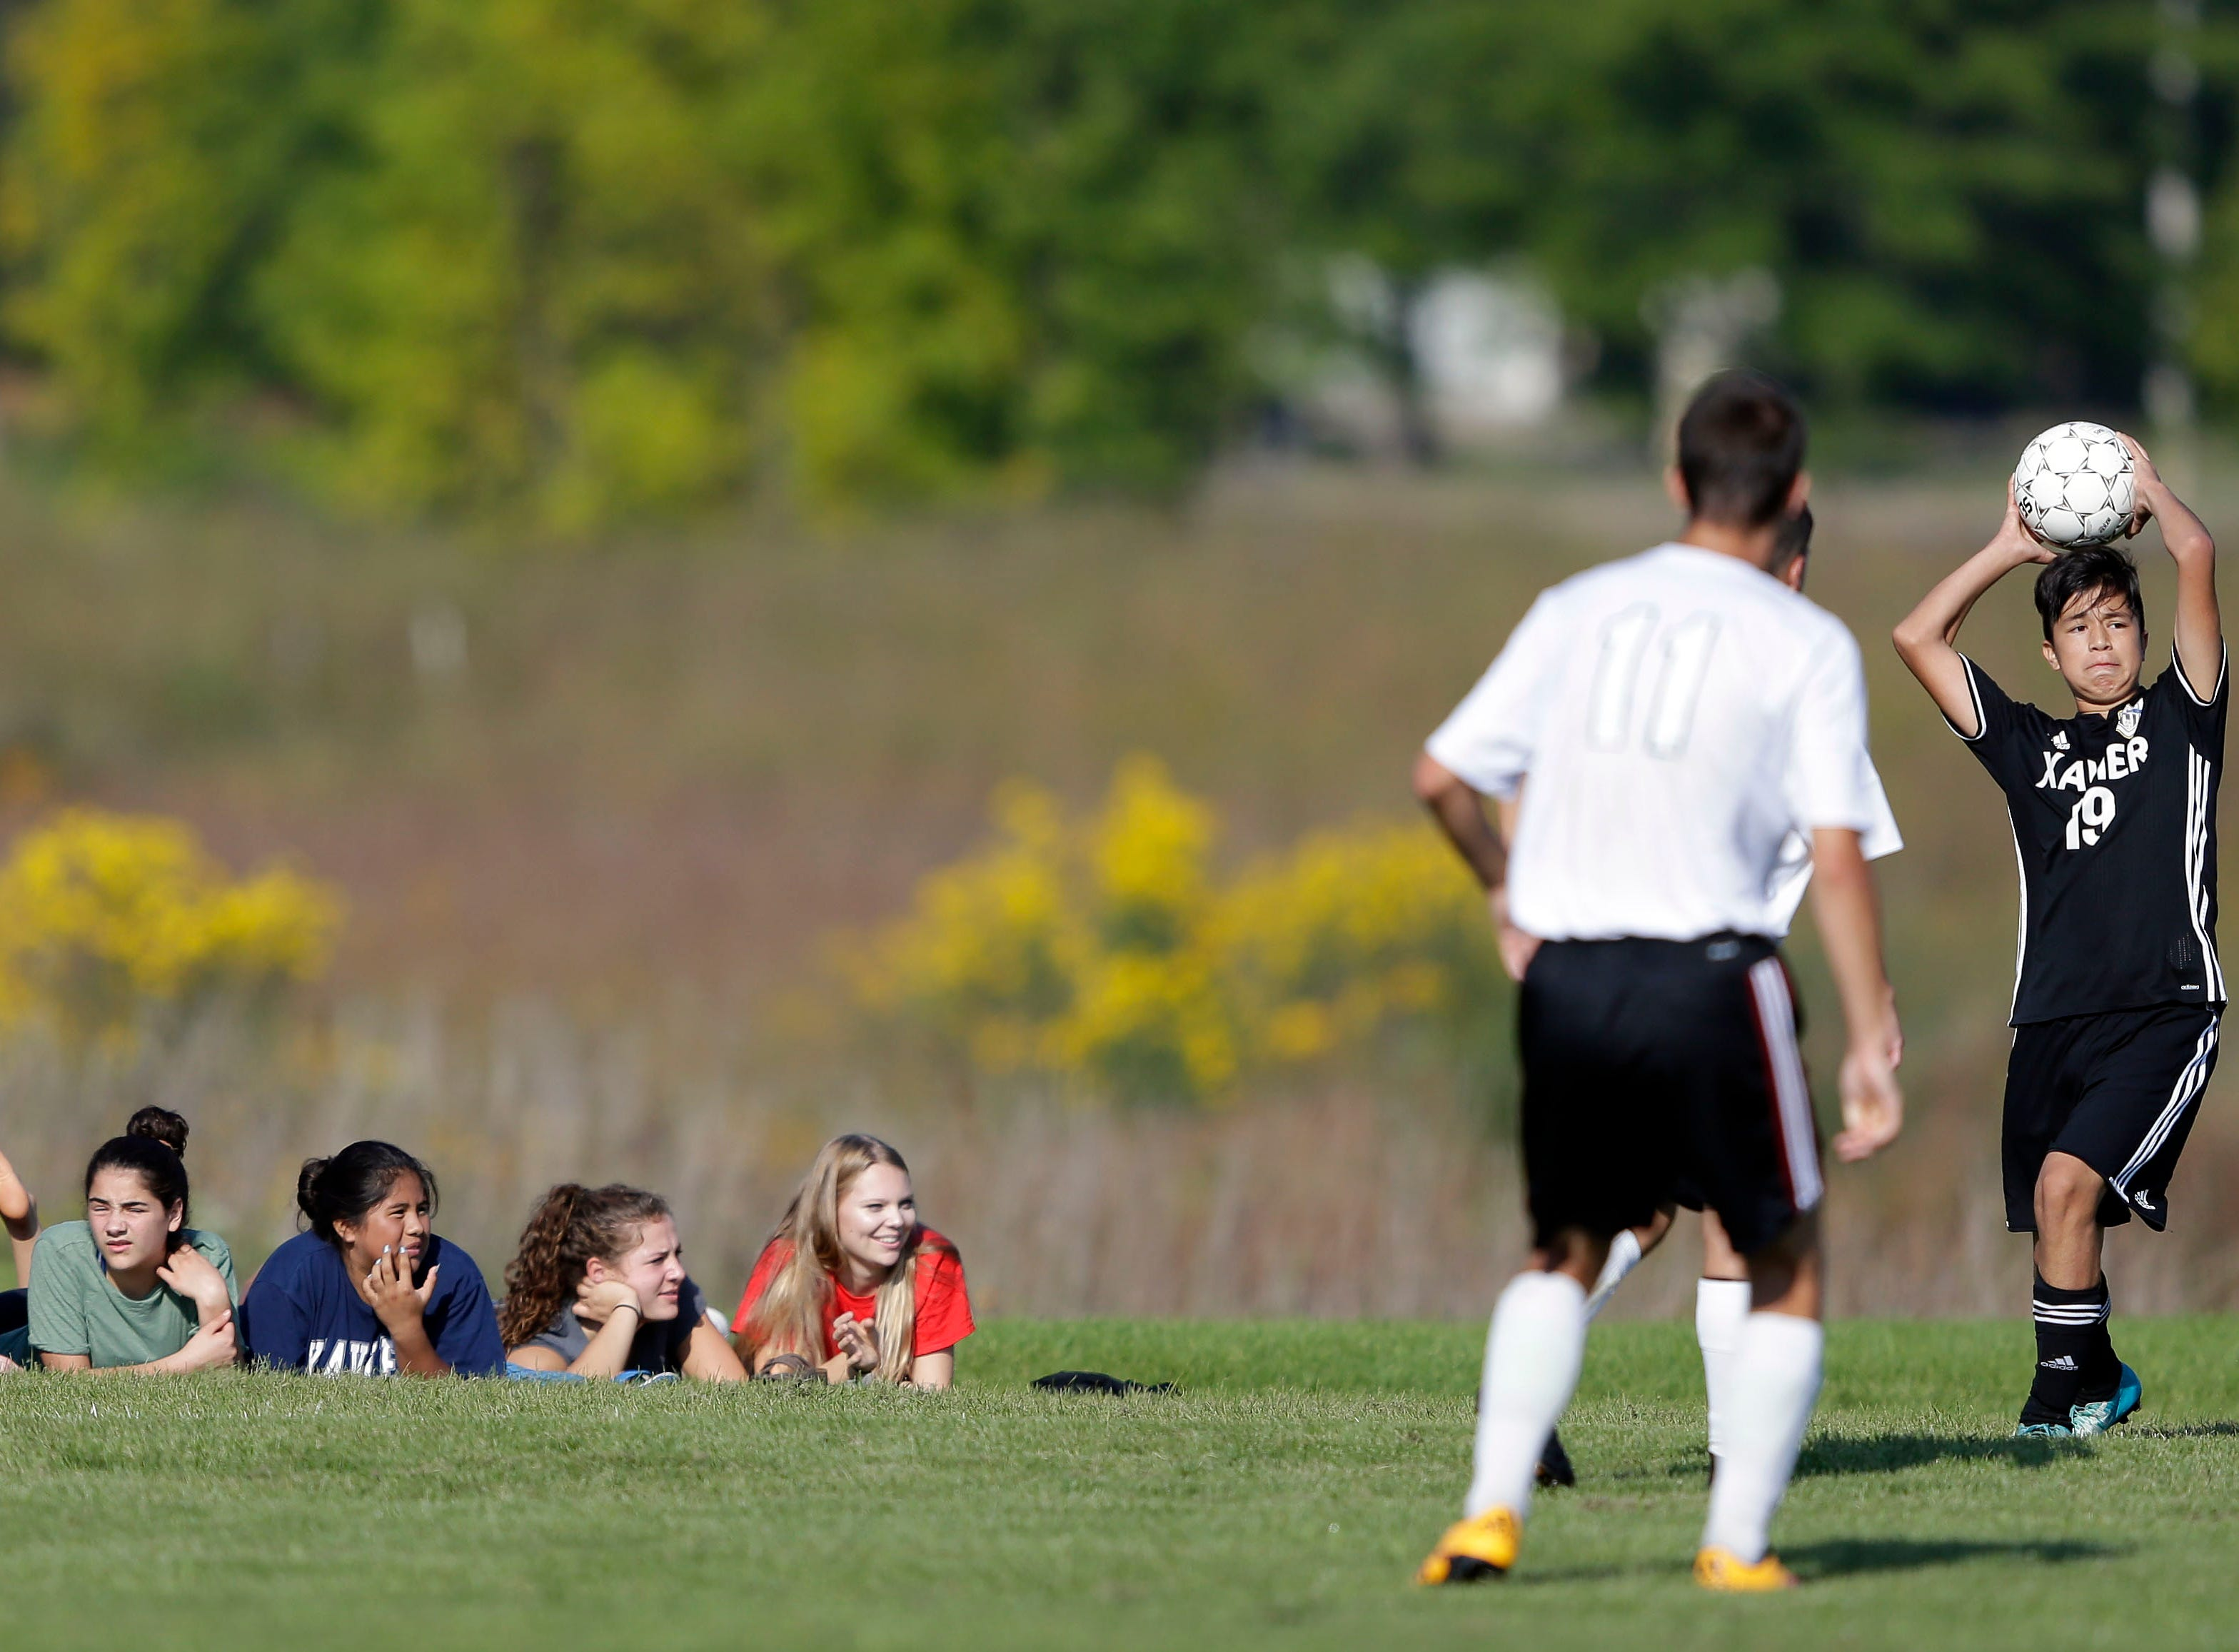 Bryan Munguia of Xavier looks for an opening against Fox Valley Lutheran as fans watch the game at the Xavier boys soccer tournament Saturday, September 15, 2018, at the Scheels USA Sports Complex in Appleton, Wis.Ron Page/USA TODAY NETWORK-Wisconsin